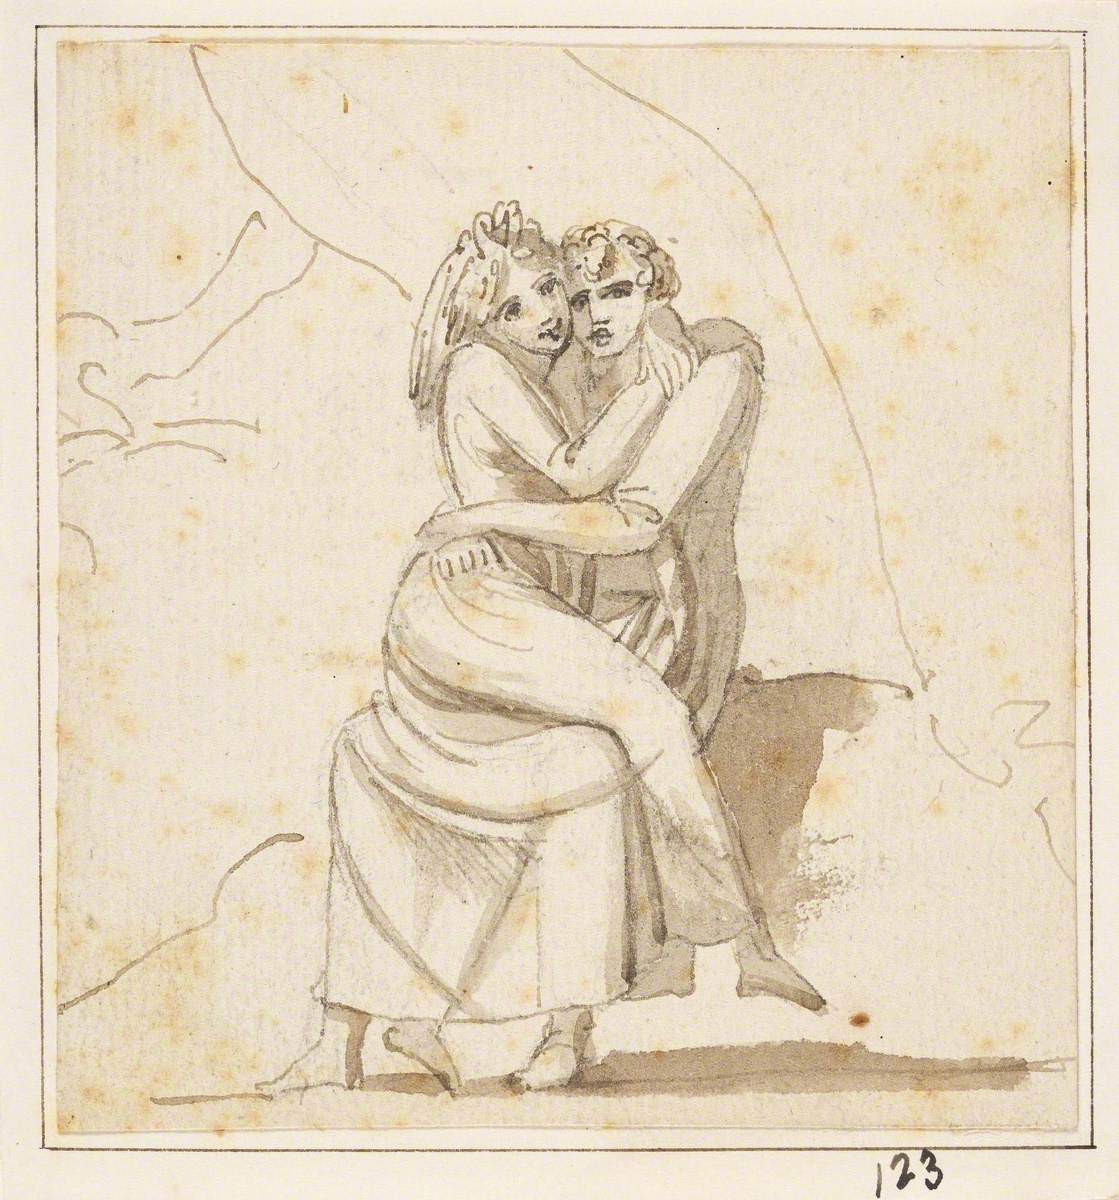 Man With a Woman on His Knee